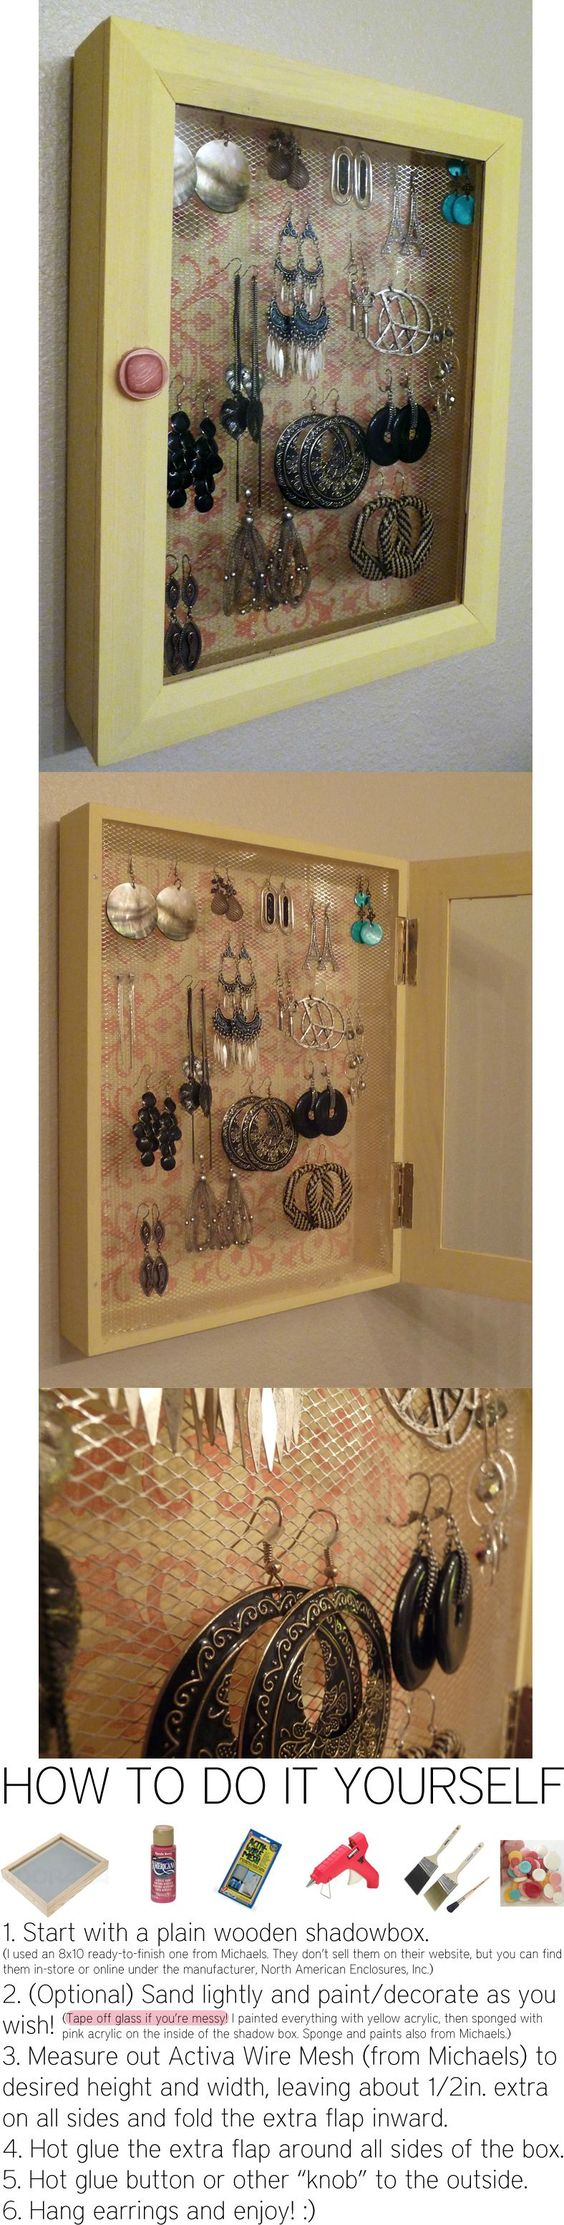 For your Earrings. I LOVE this. Going to have to make this. I'm thinking necklaces and just use the brushed nickel self adhesive hooks from Lowe's